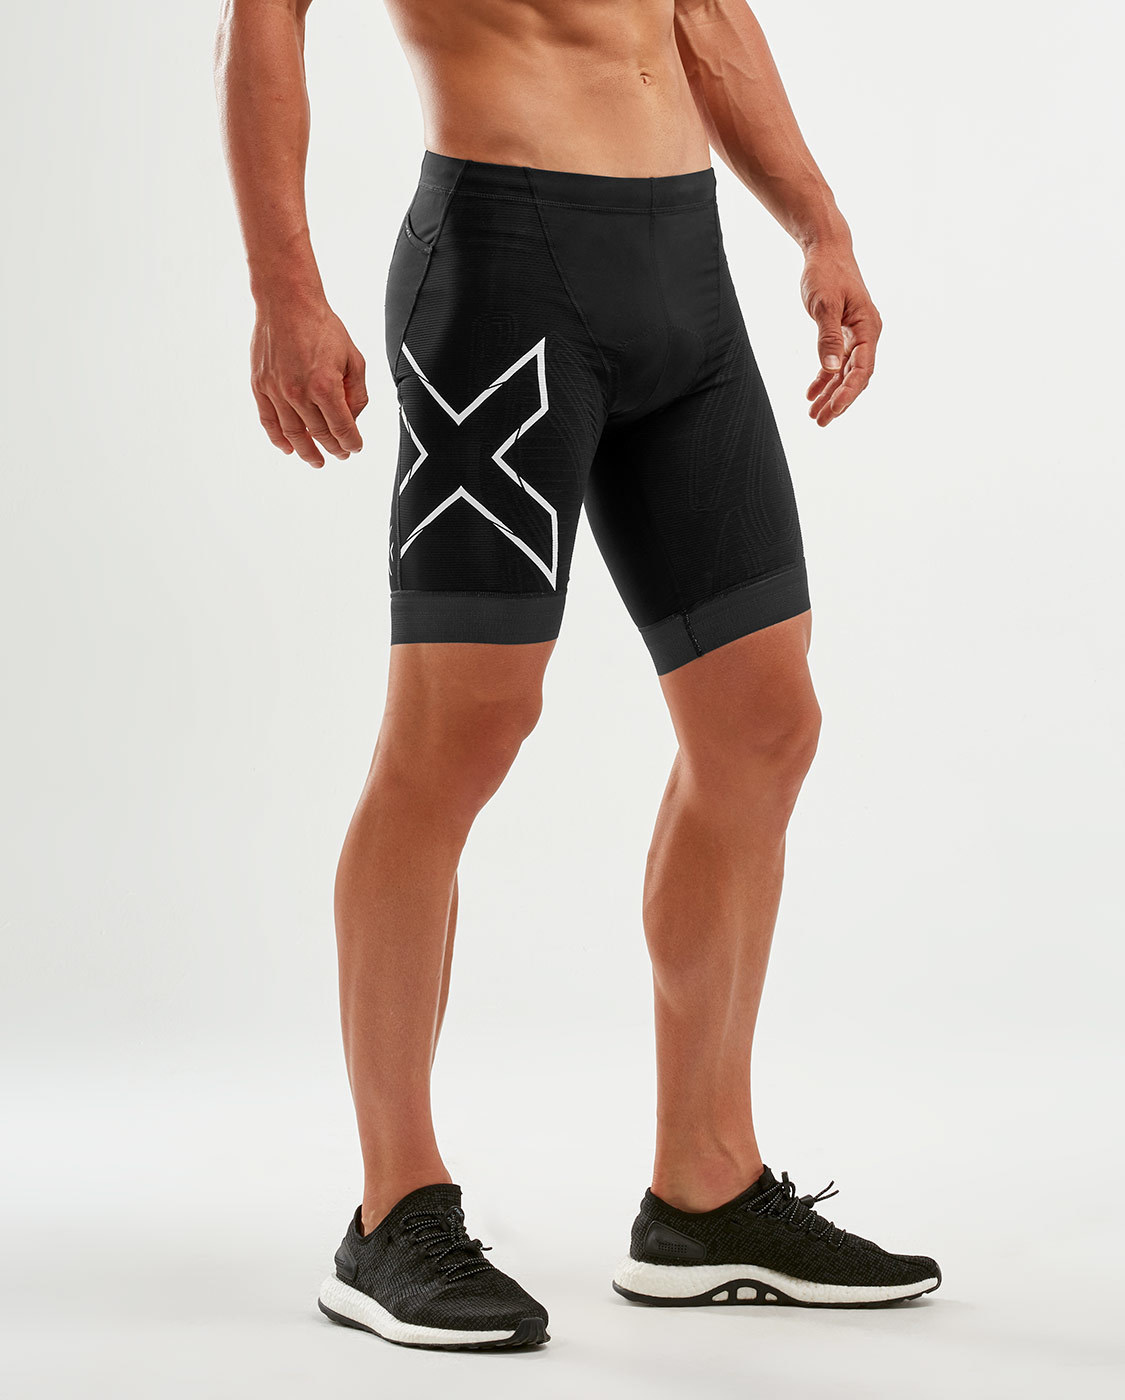 2XU 2XU Mens Compression Tri Shorts